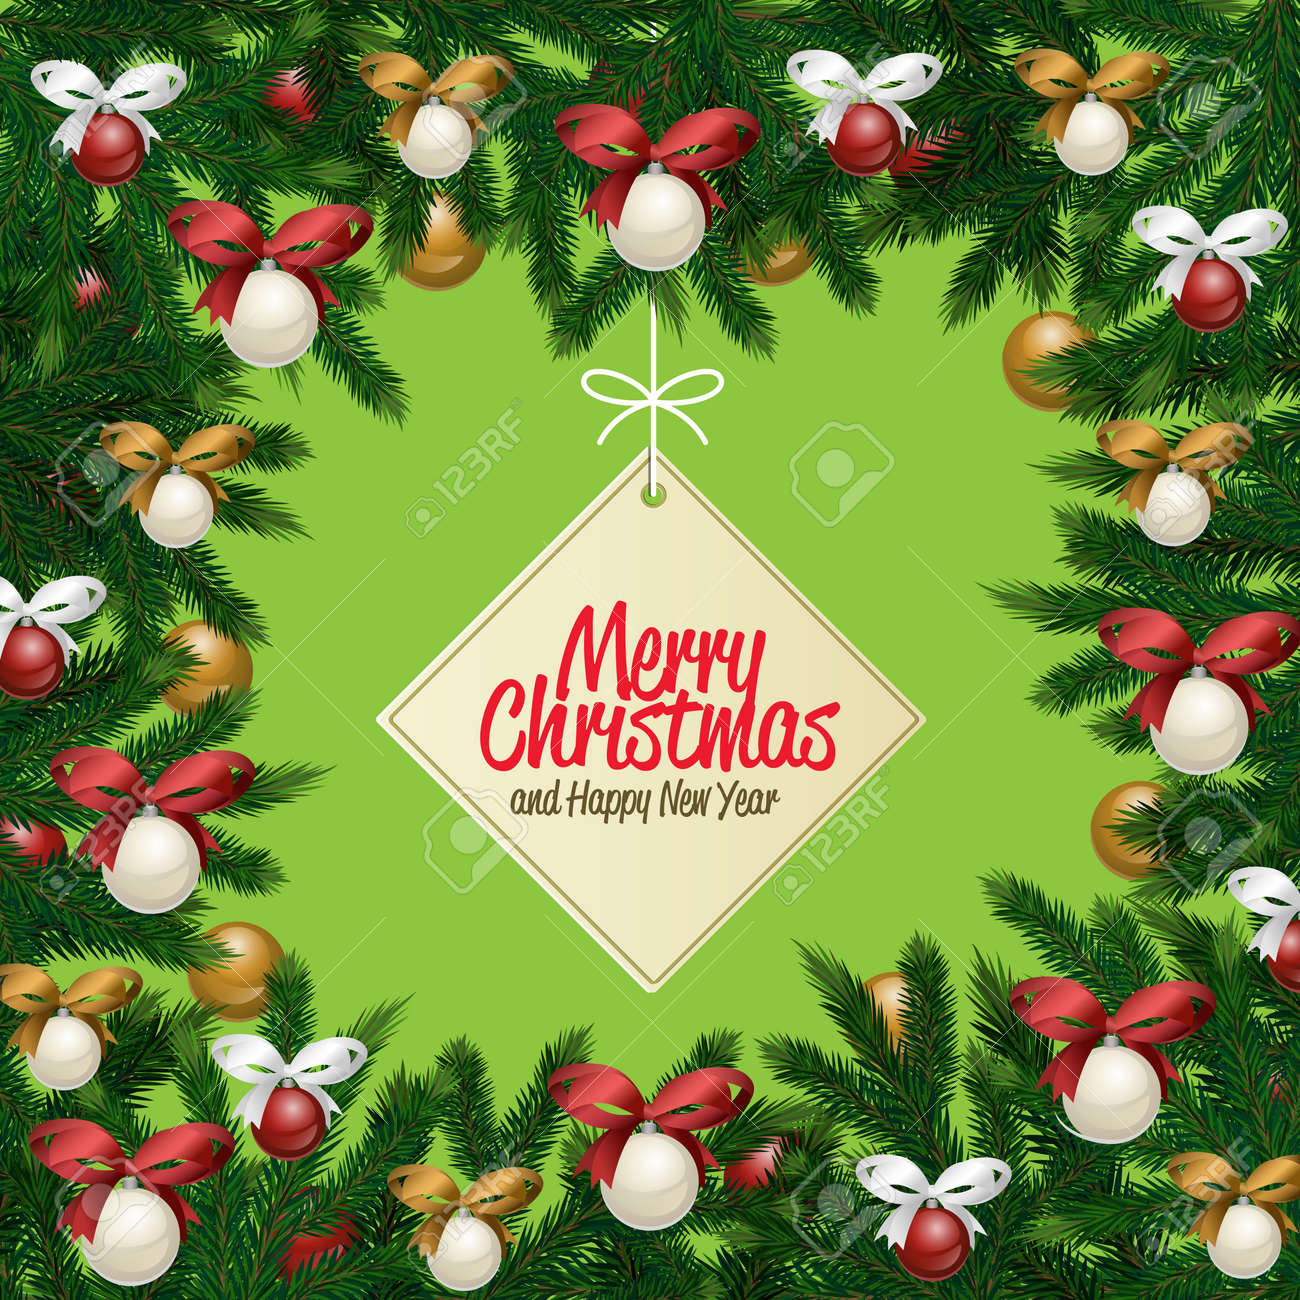 Merry Christmas And Happy New Year Greetings Vector Illustration